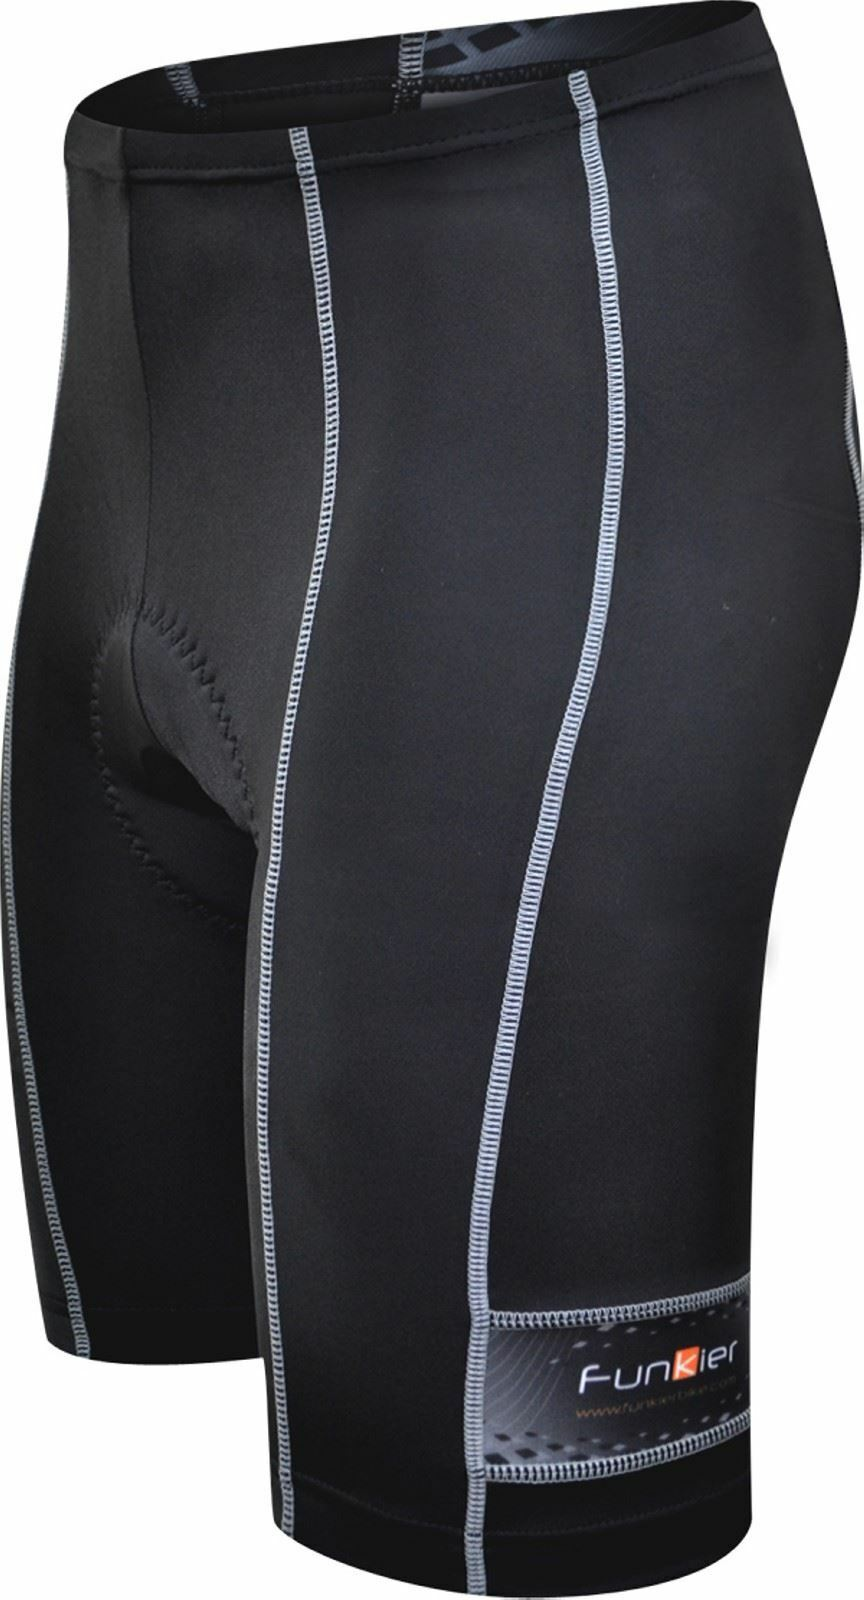 Funkier Force S-203-C1 - 10 Panel Panel Panel Aktiv Shorts aus Schwarz Gr. M  | Outlet Online Store